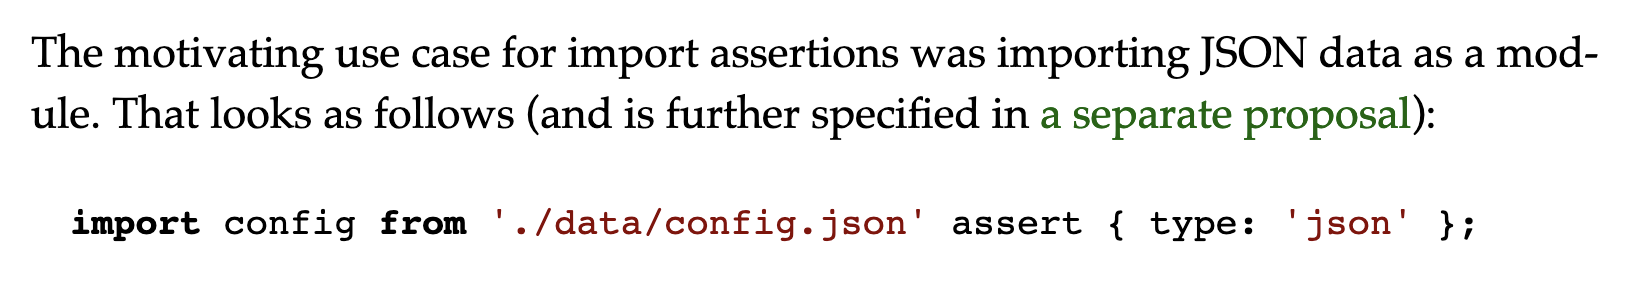 The motivating use case for import assertions was importing JSON data as a module. That looks as follows (and is further specified in a separate proposal):  import config from './data/config.json' assert { type: 'json' };